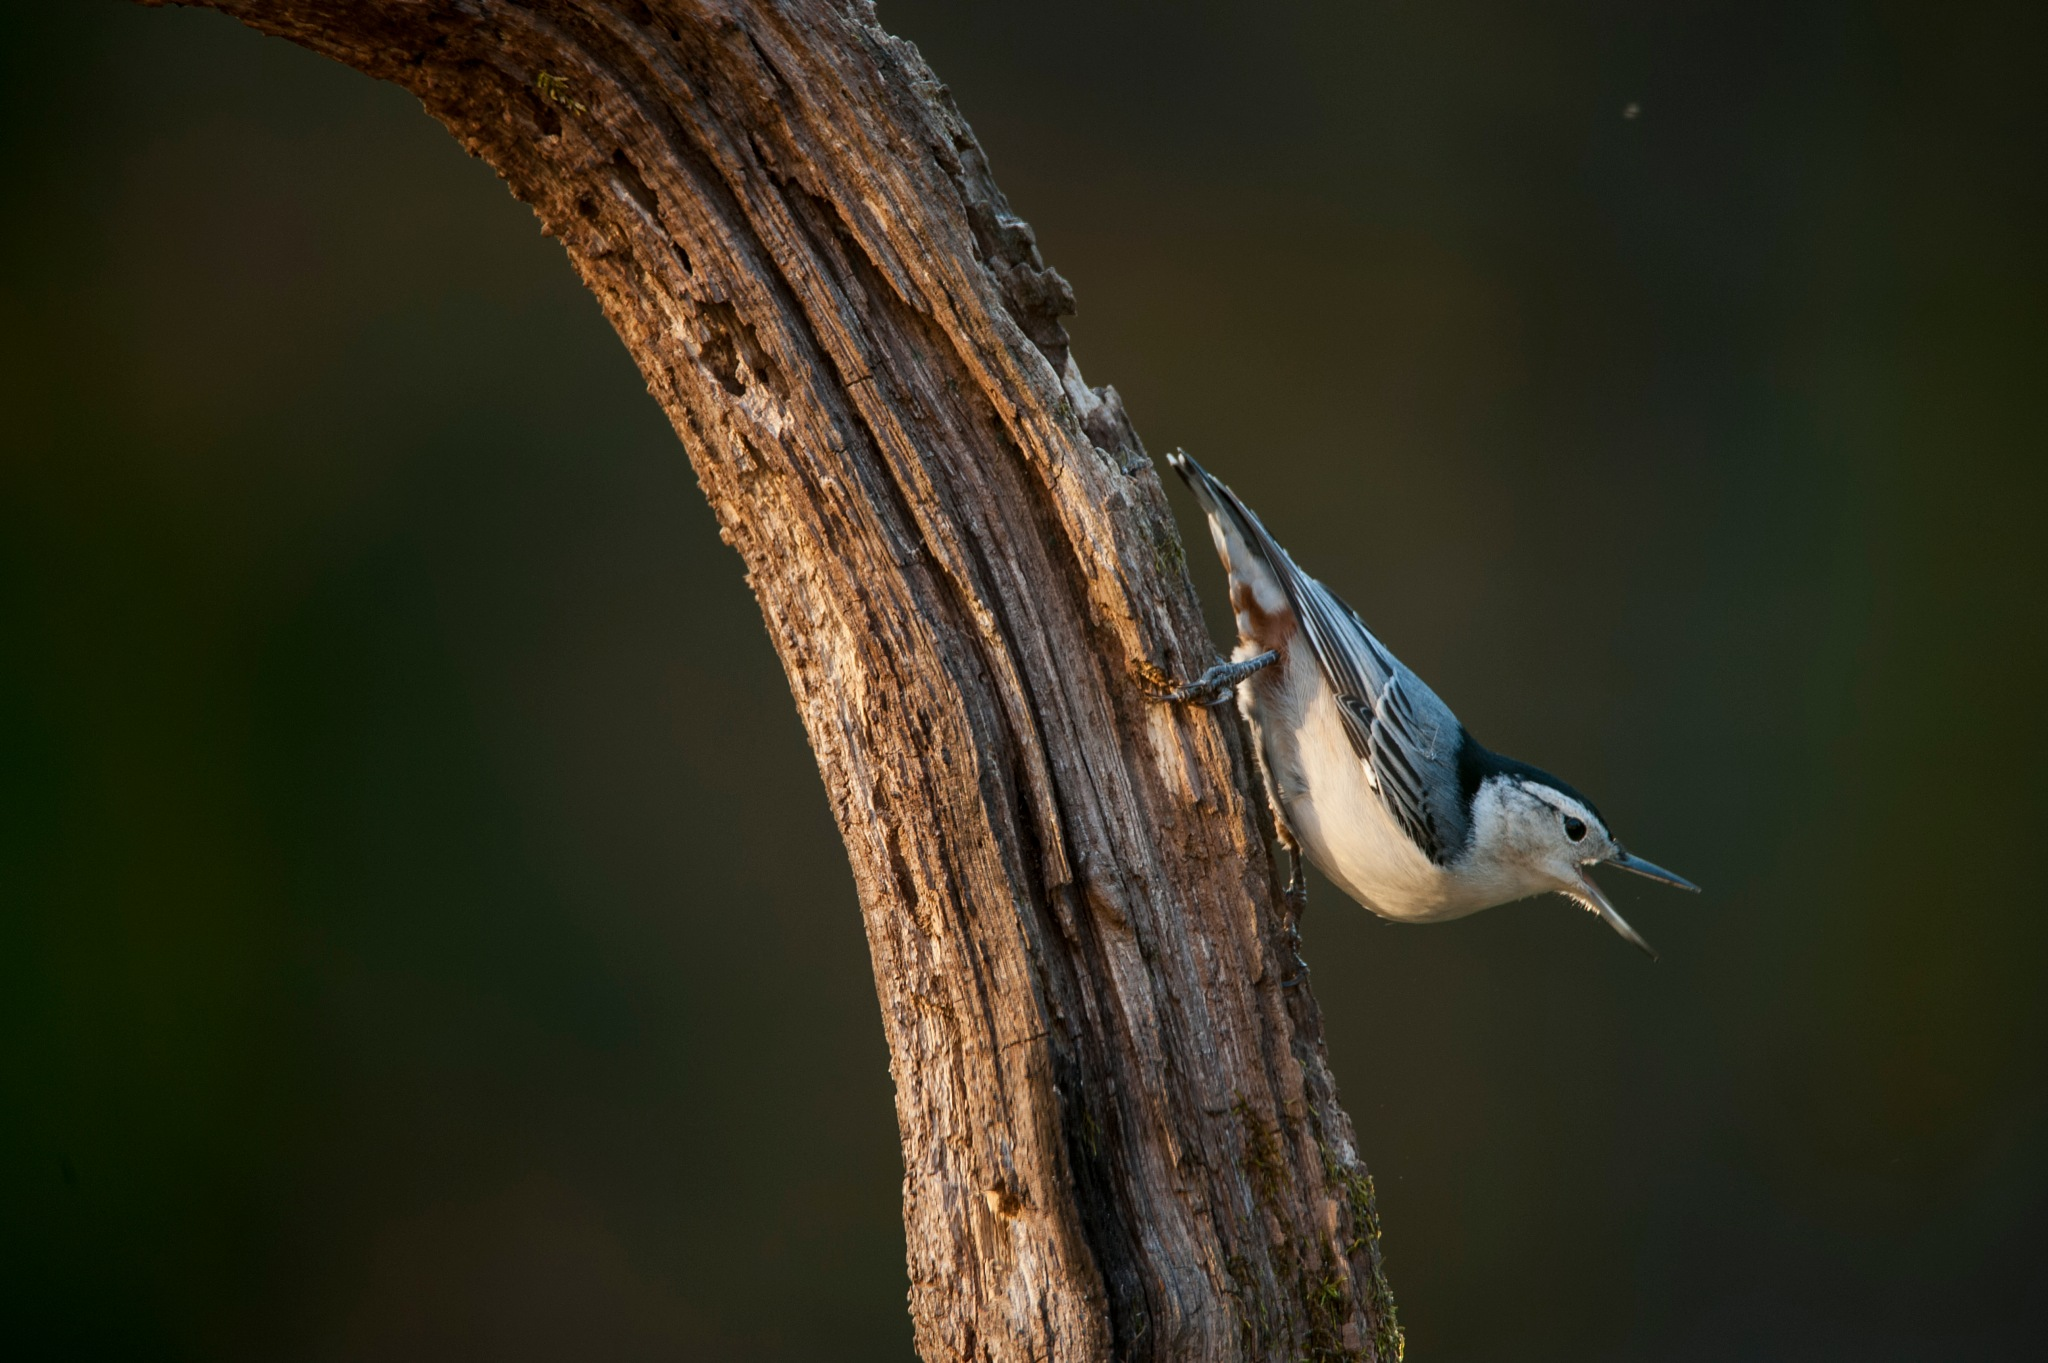 Male Nuthatch by JanetF